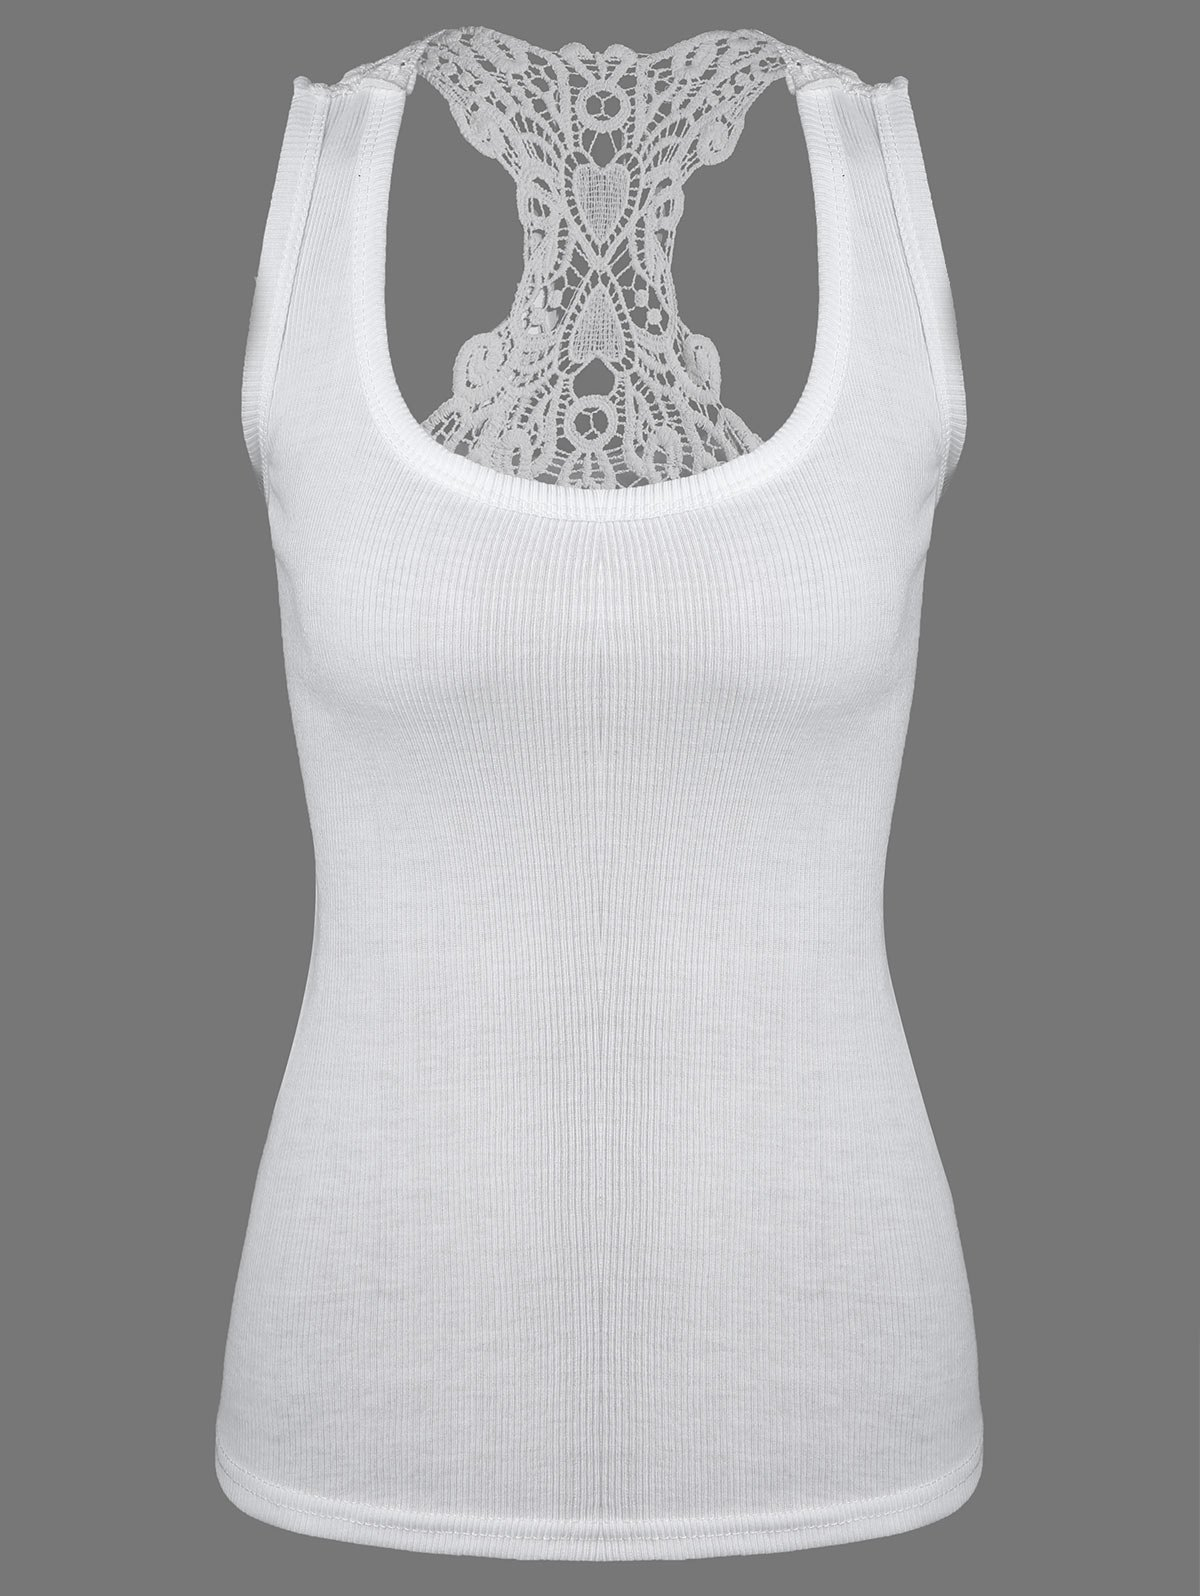 Lace Panel Racerback Tank Top - WHITE ONE SIZE